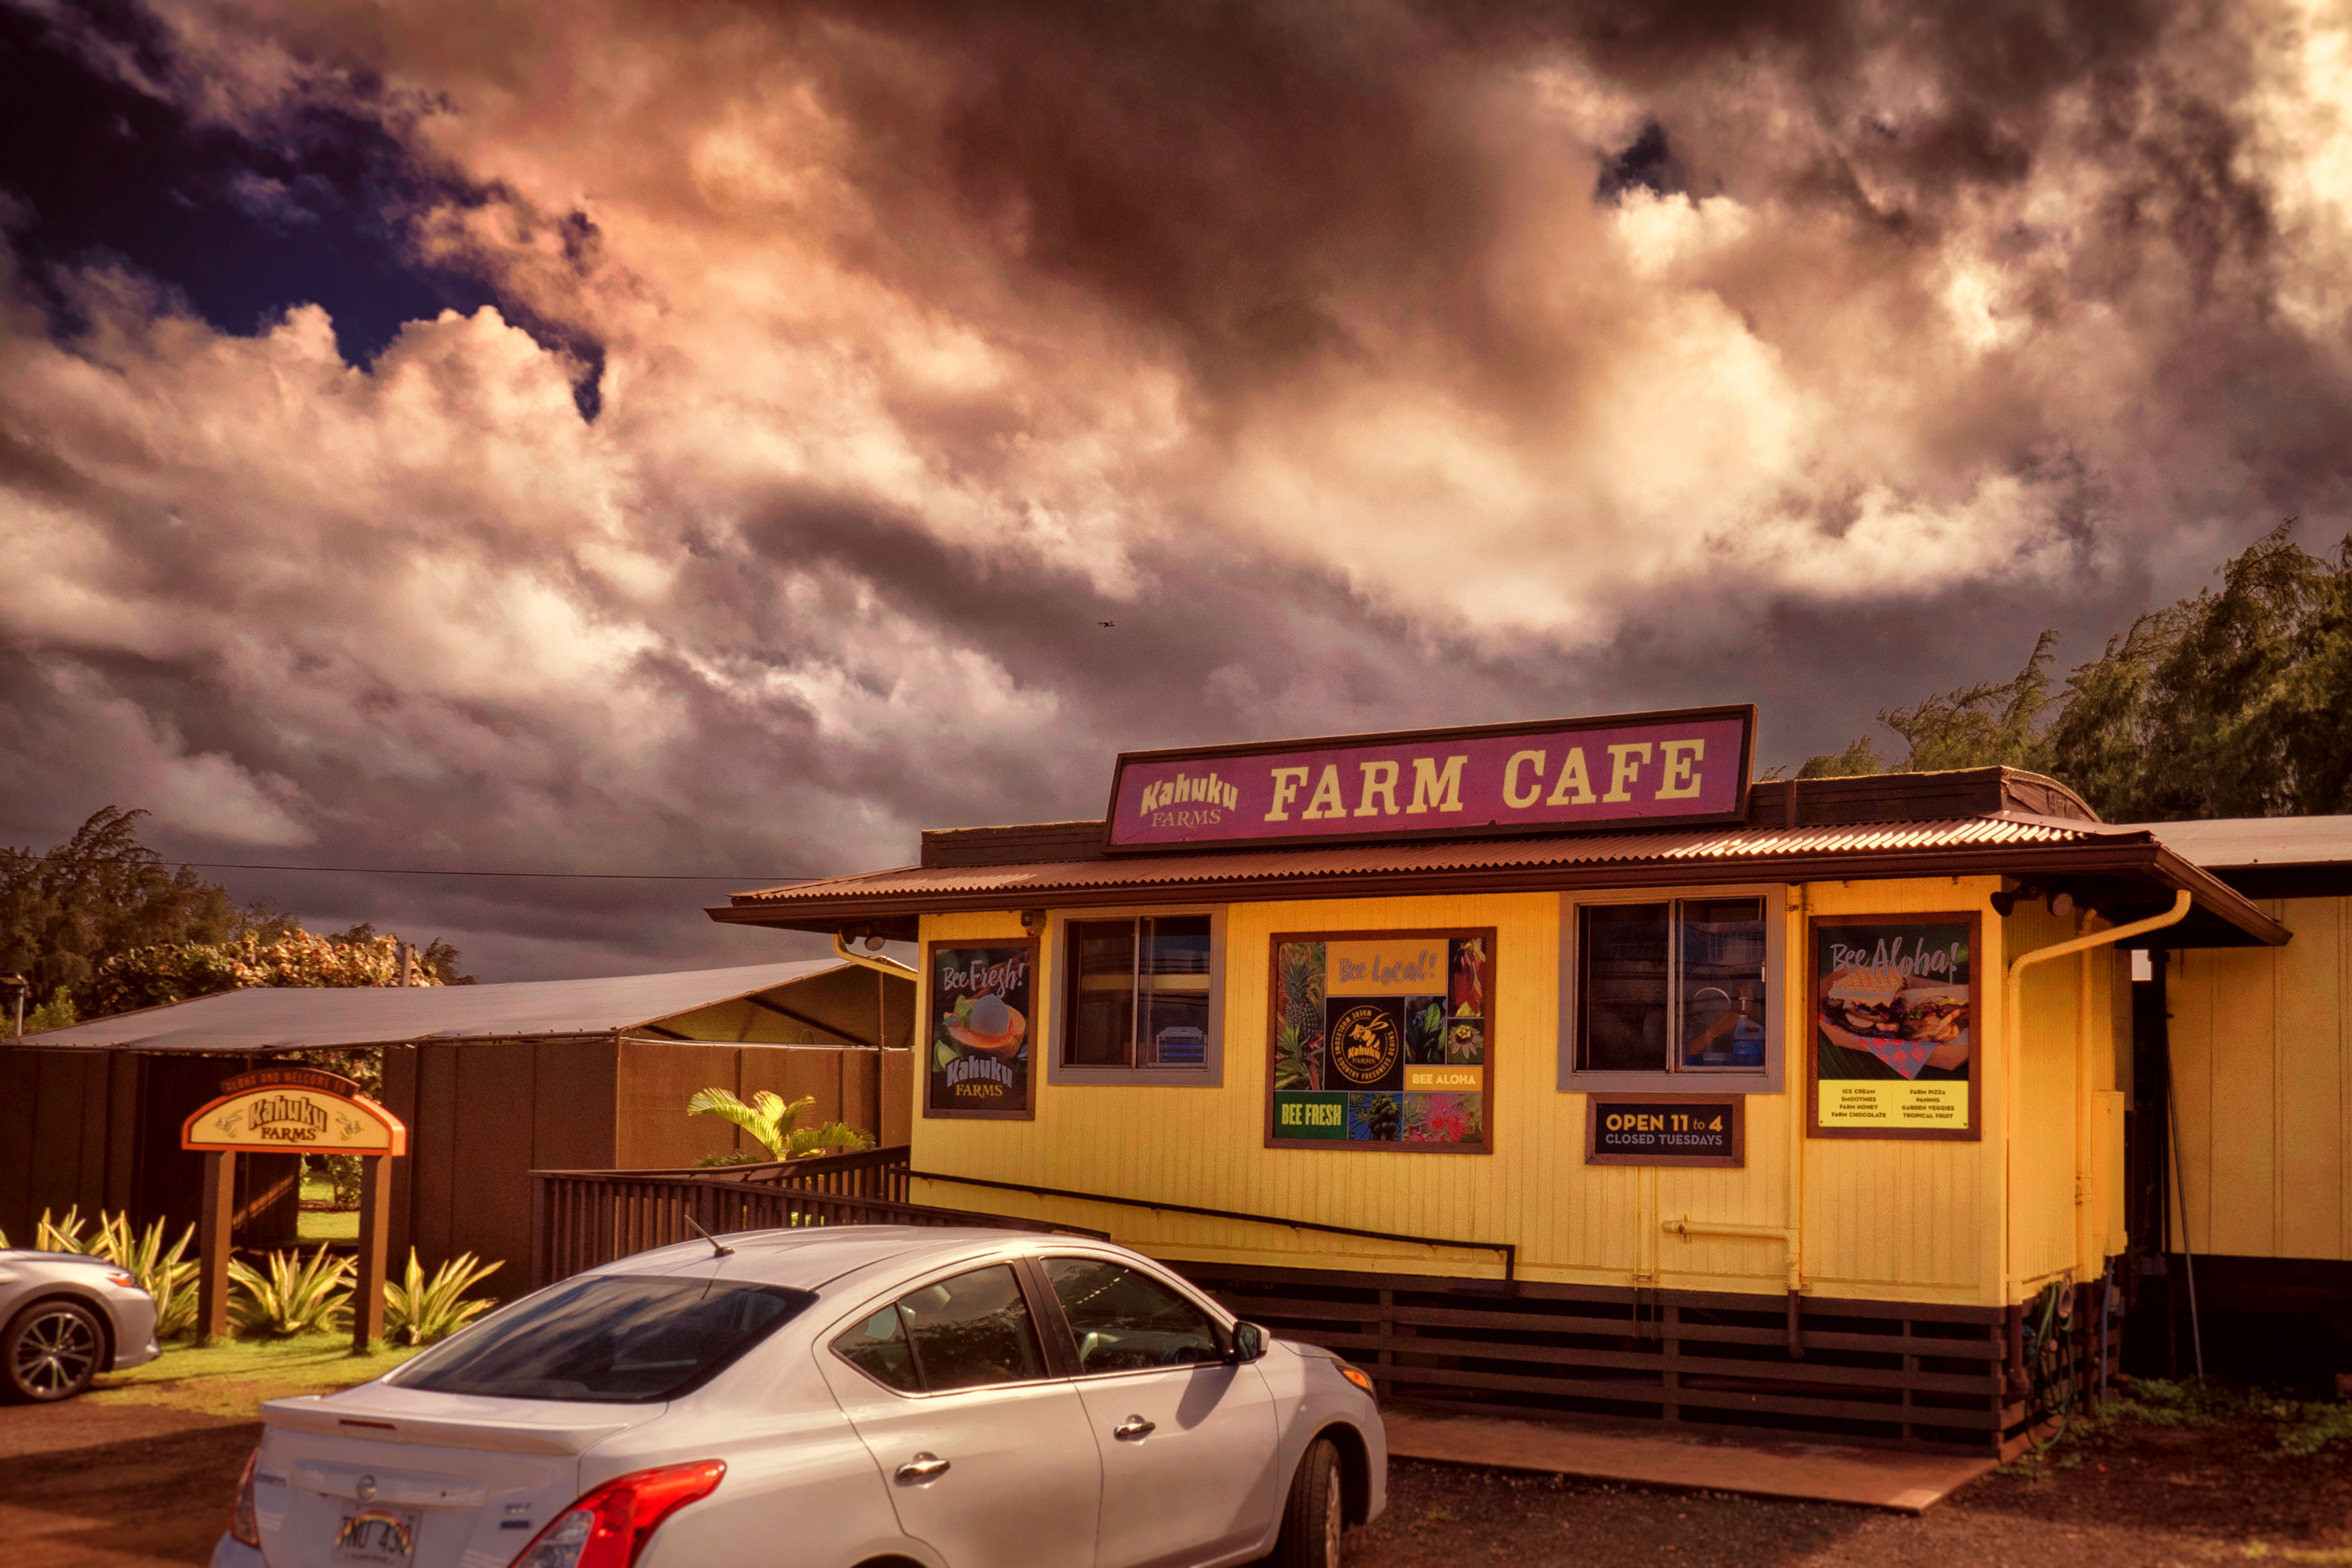 Kahuku Farm Cafe